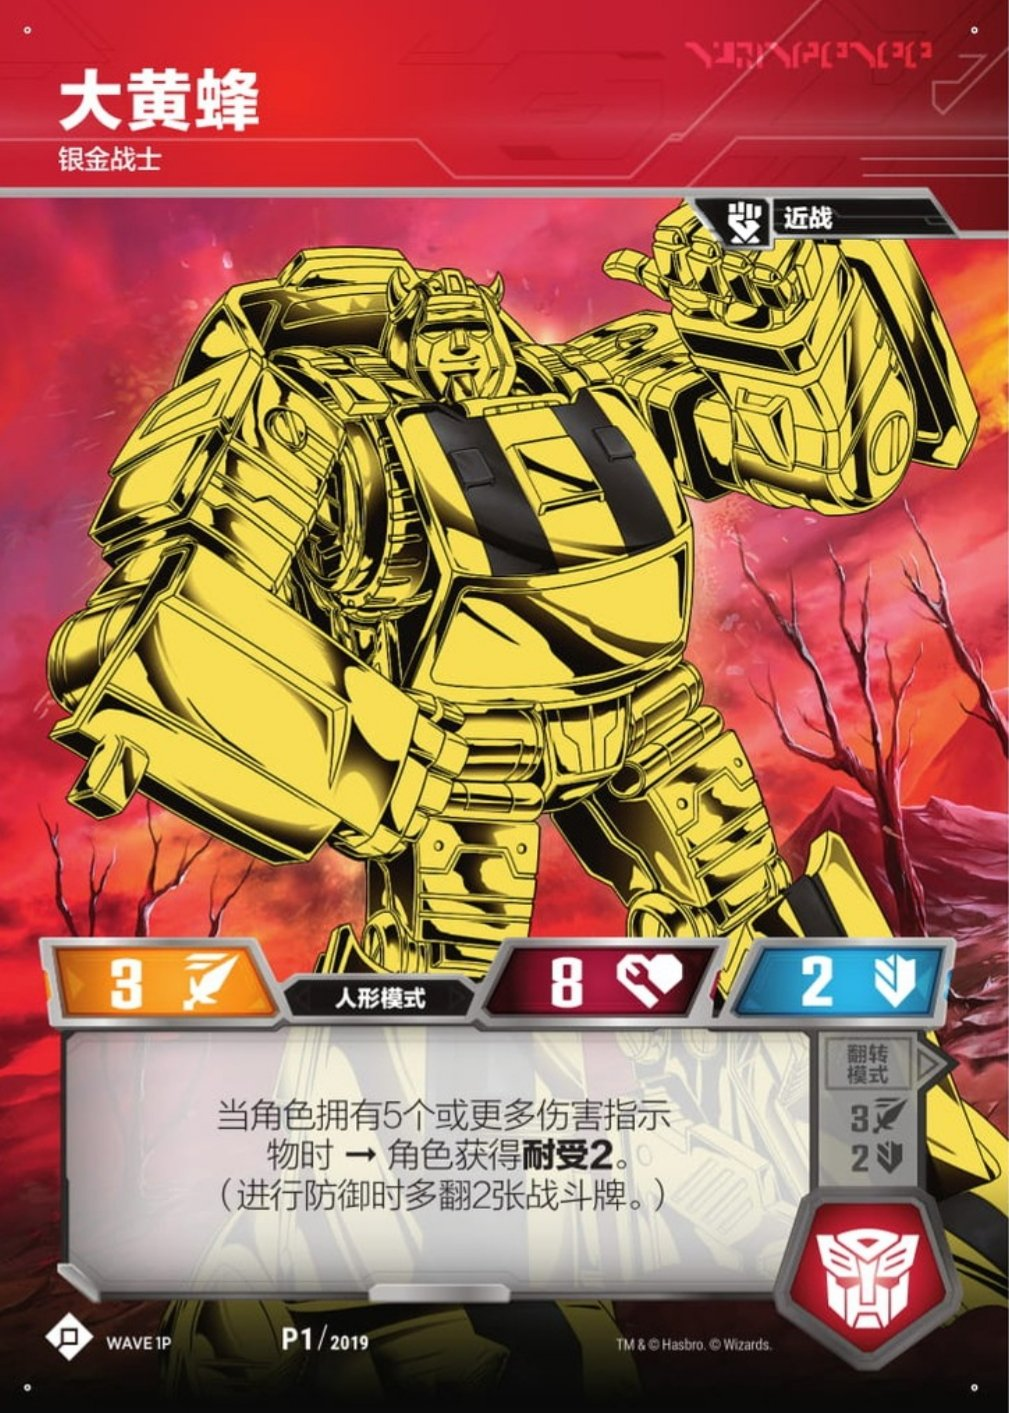 https://images.fortressmaximus.io/cards/pro/character/gold-bumblebee-electrum-warrior-PRO-bot.jpg